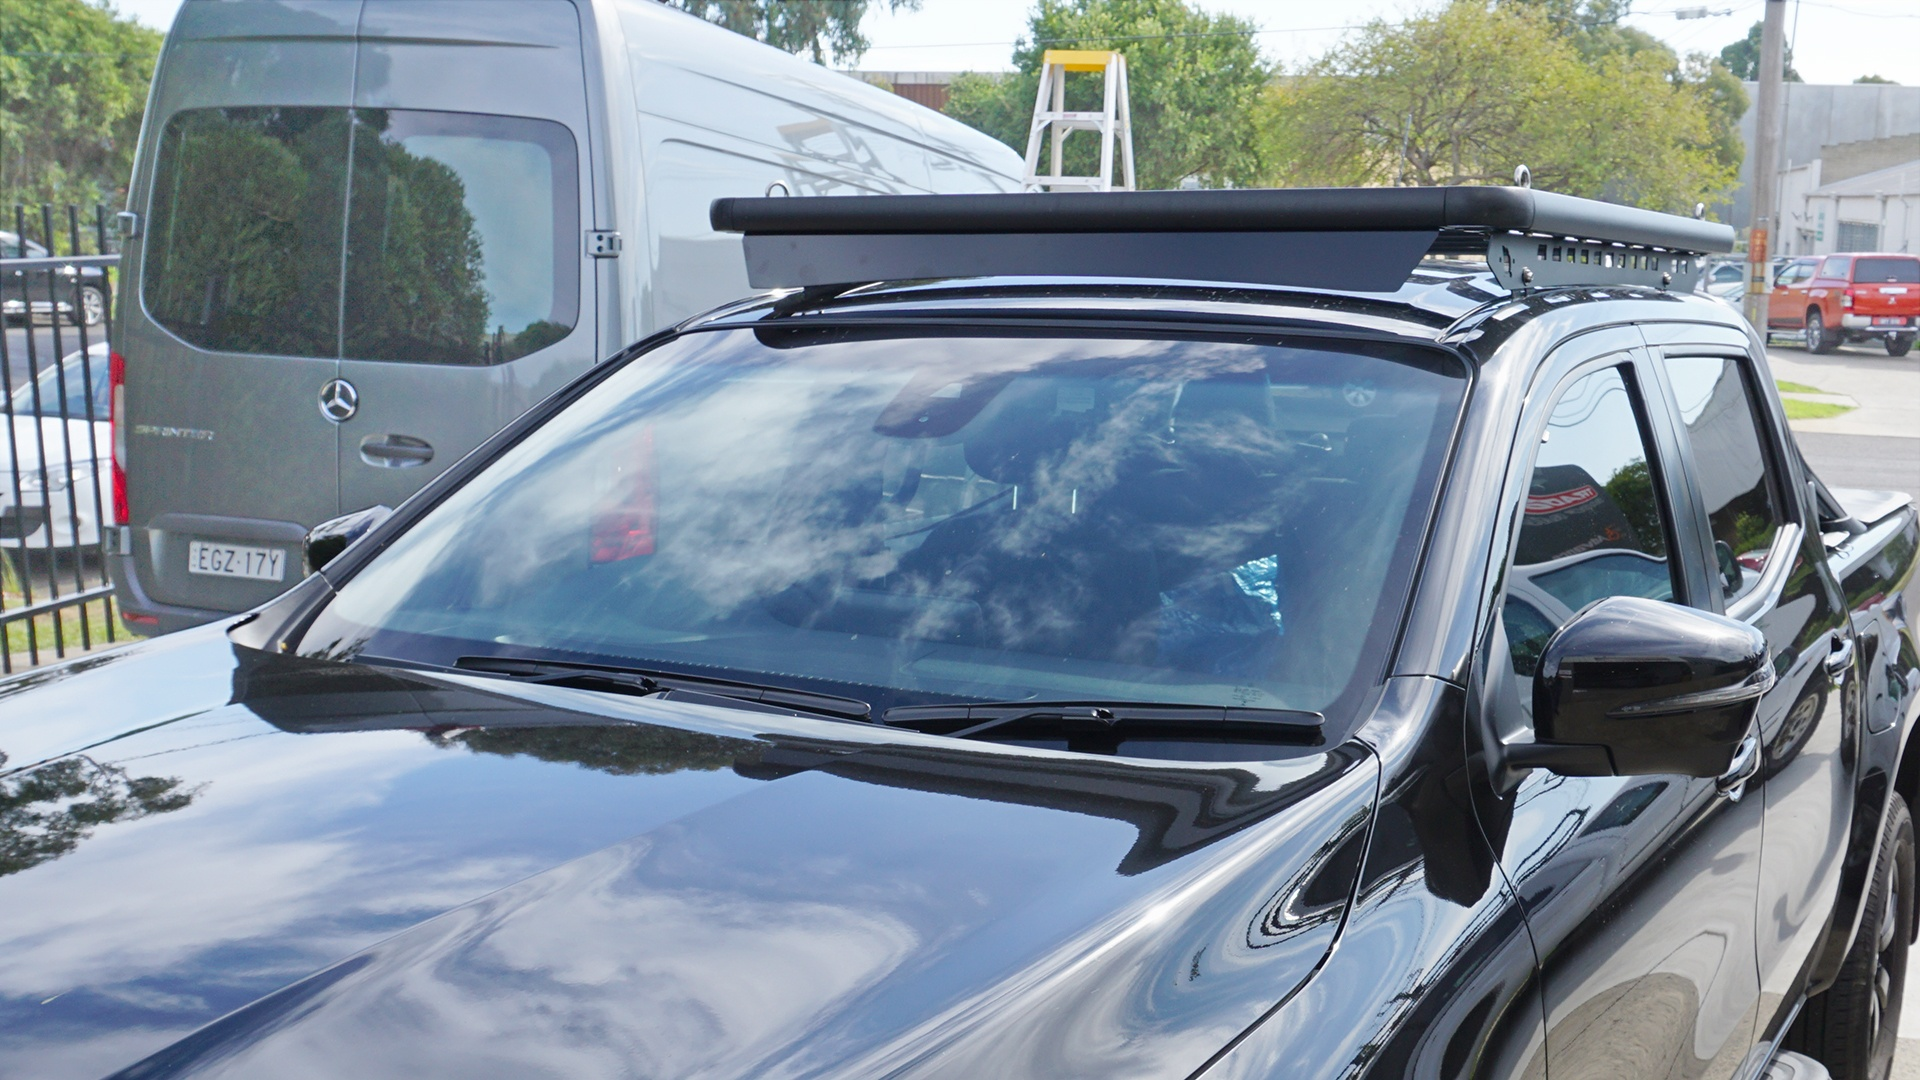 Front view of Navara with a Wedgetail roof rack installed showing the wind deflector.